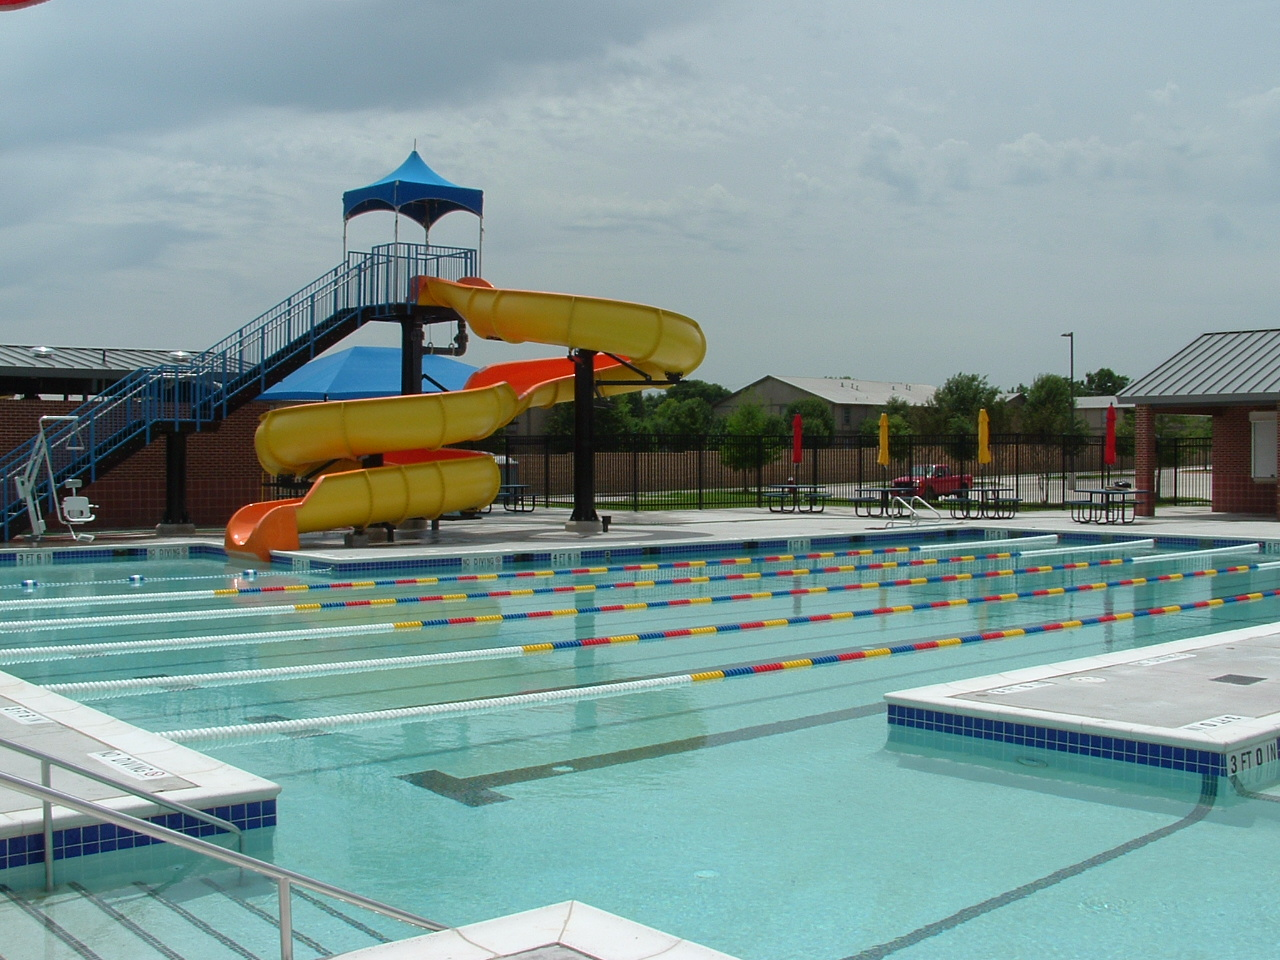 Lap pool and large water slide